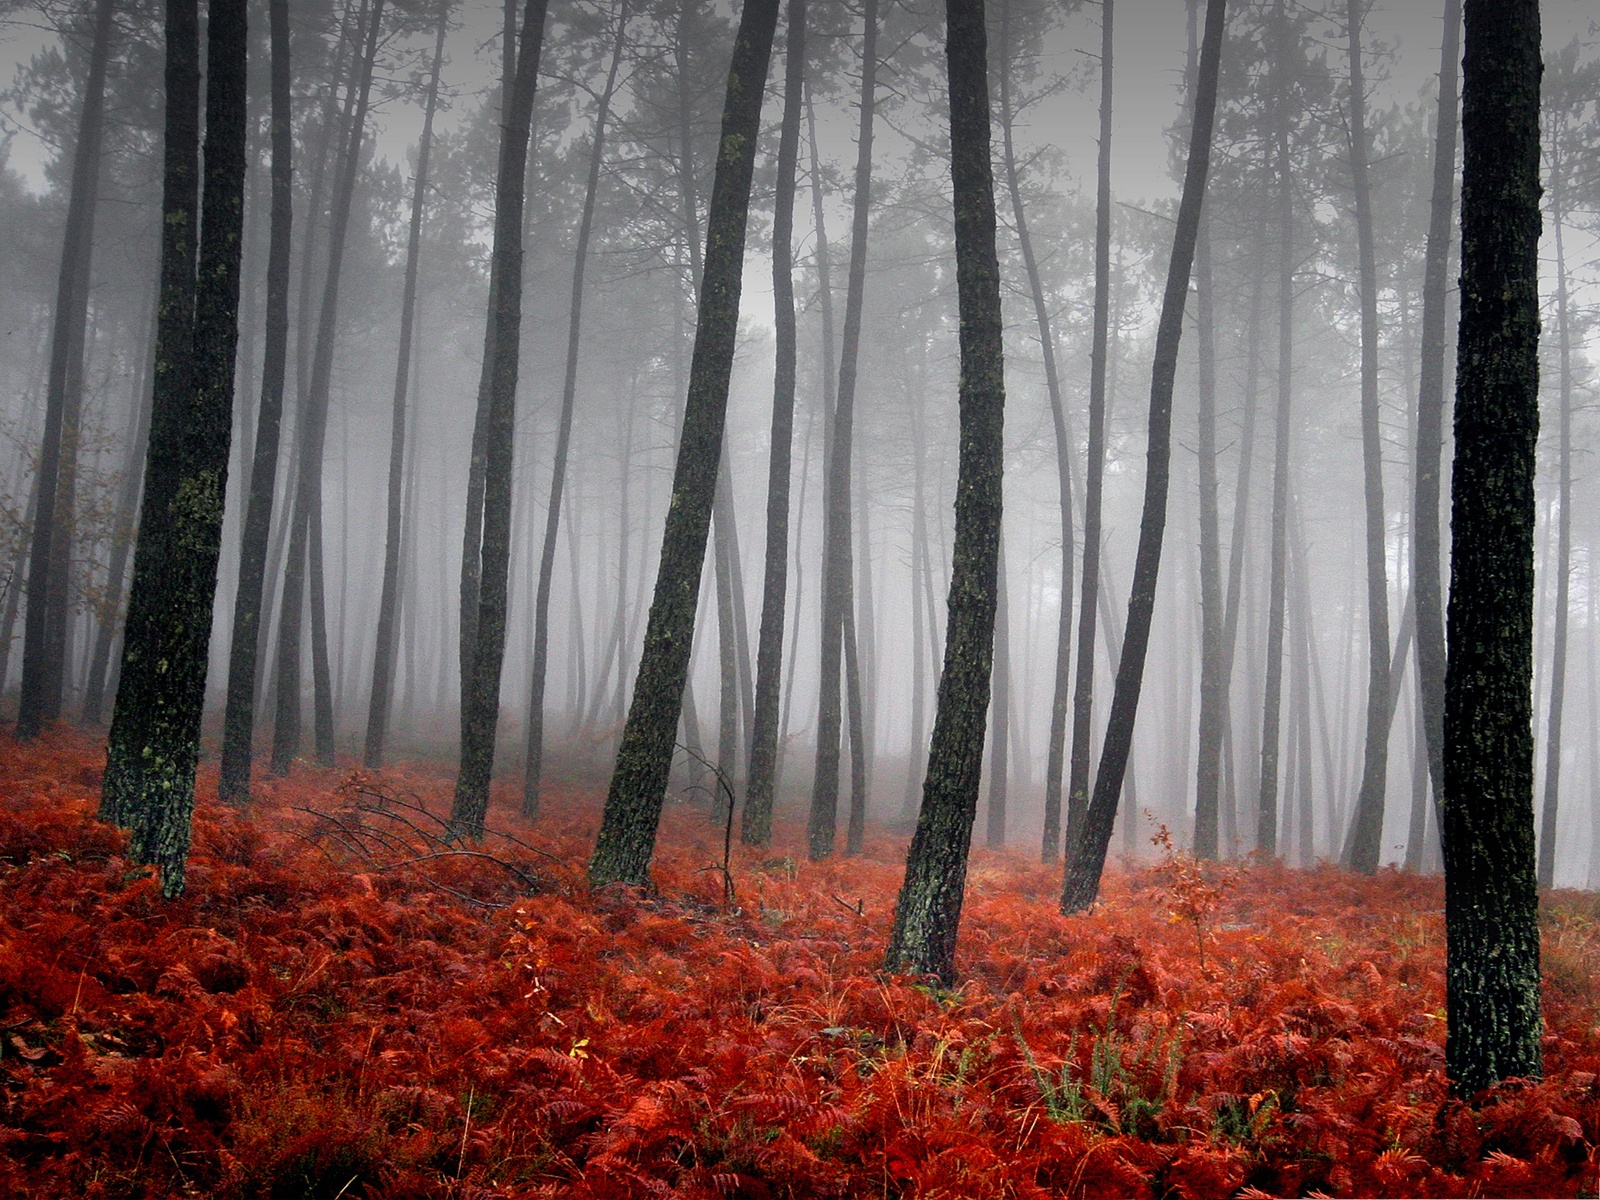 Wallpaper For Computer, Tall Black Trees In The Misty